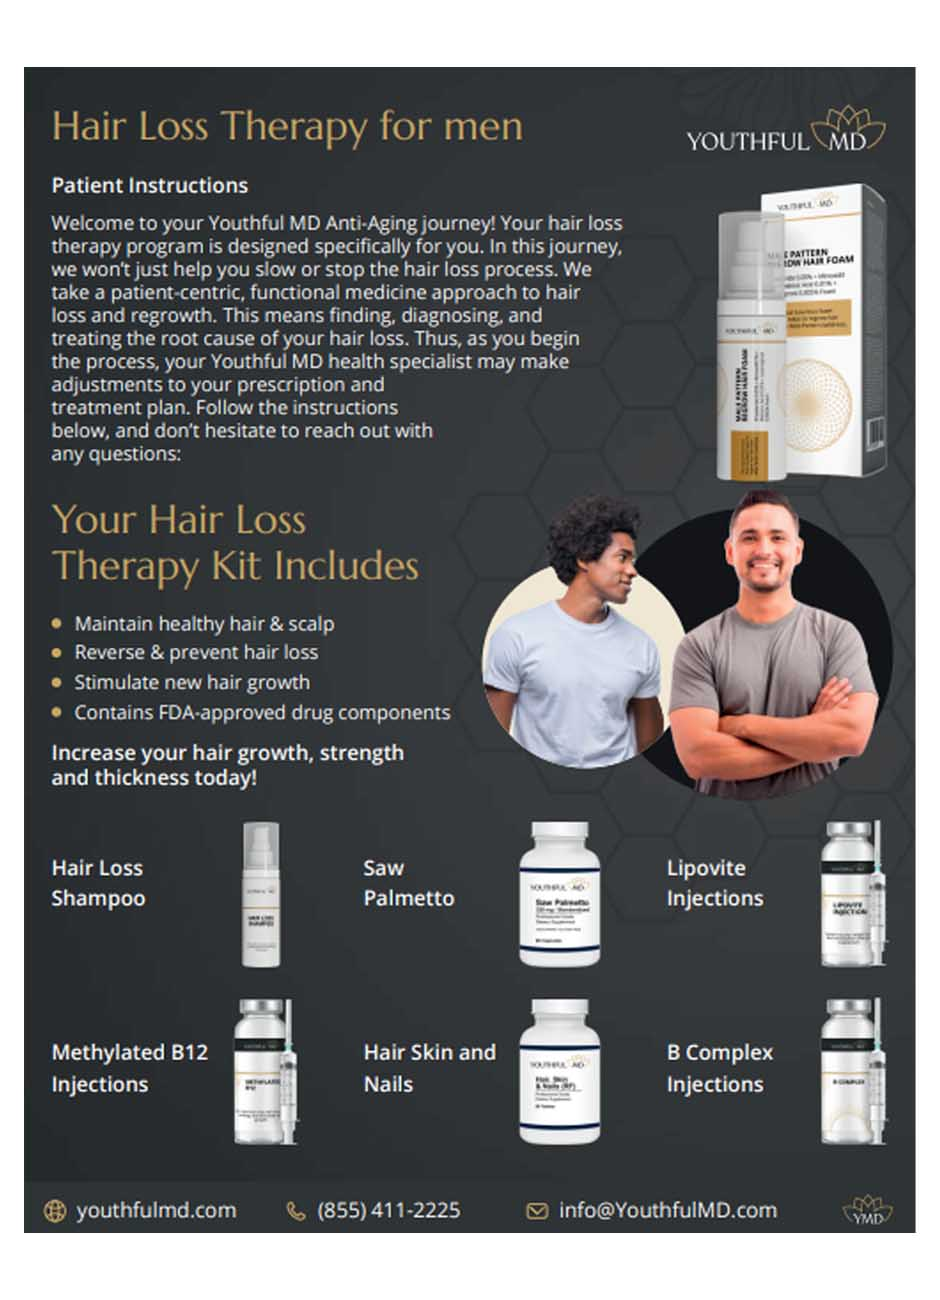 YMD Men's hair loss patient instructions